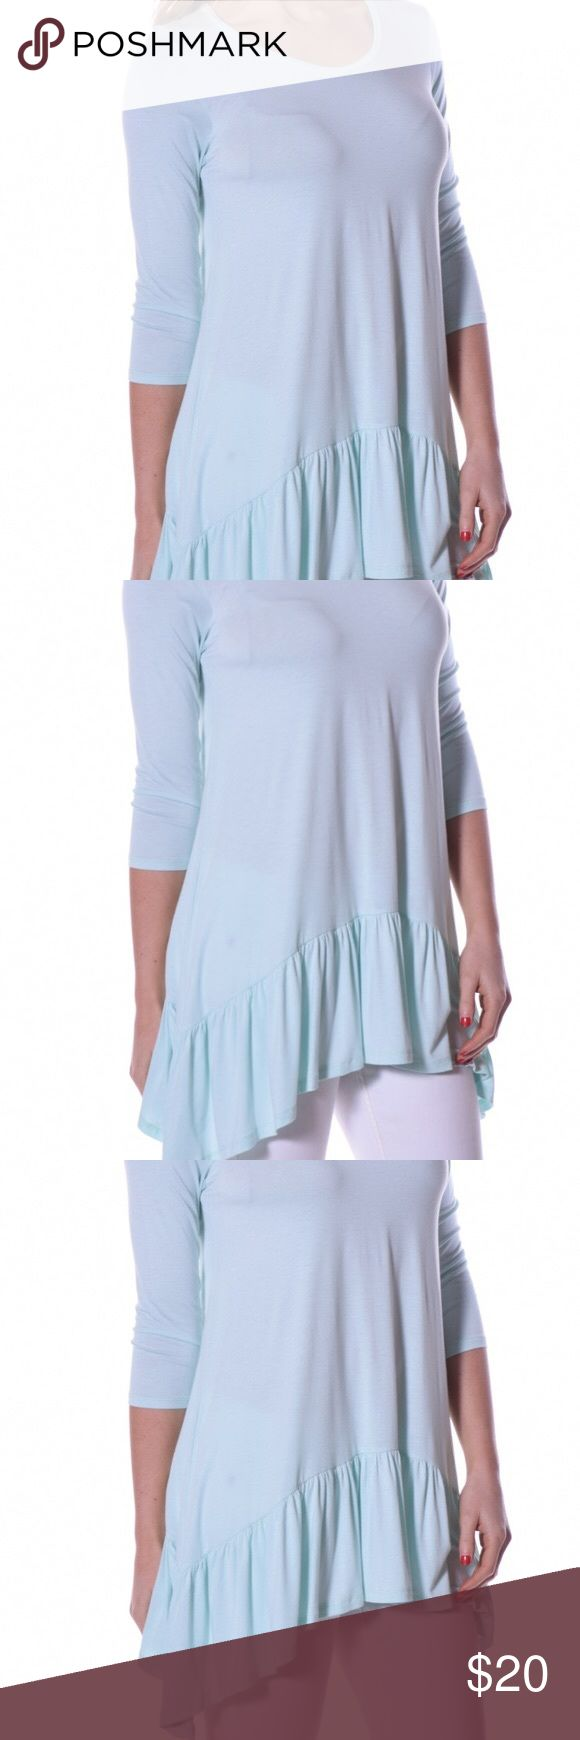 Asymmetrical Tunics! Ballerina Asymmetrical Tunic for sale . Material Content: 95% Viscose 5% Spandex. Made in the USA. Blue available Pastels Clothing Tops Tunics